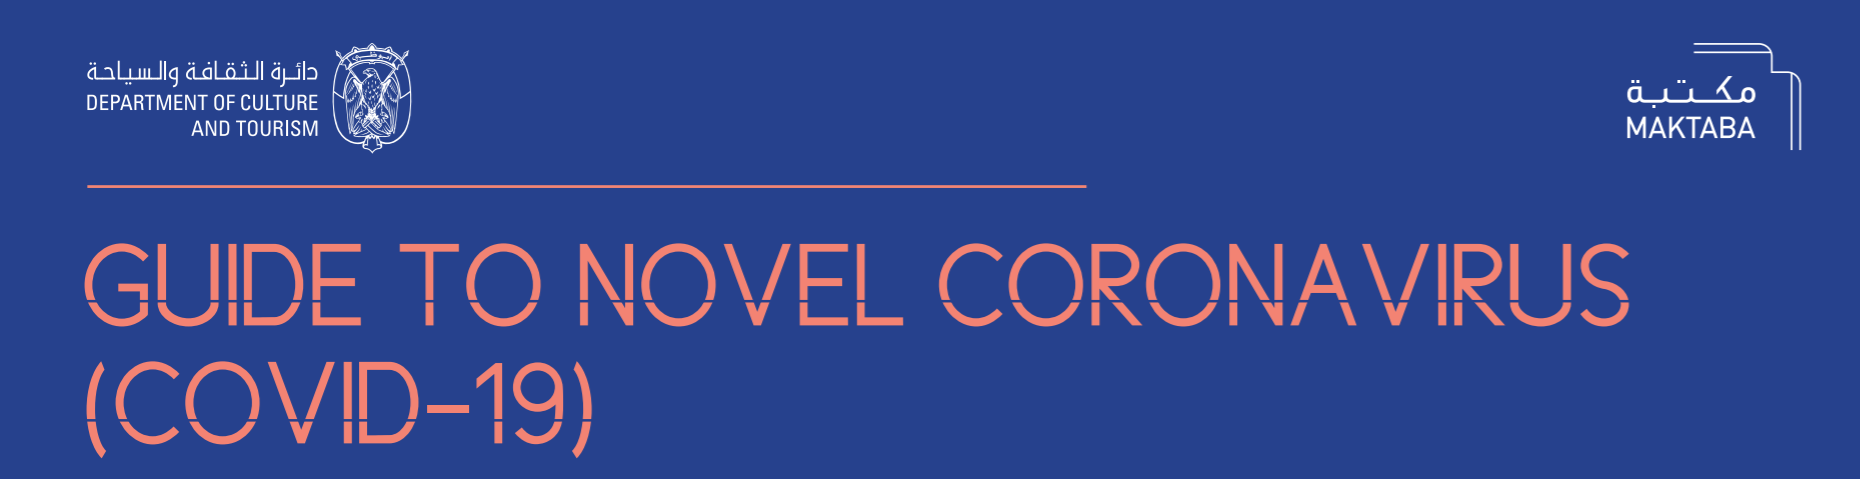 GUIDE-TO-NOVEL-CORONA-VIRUS-COVID-19